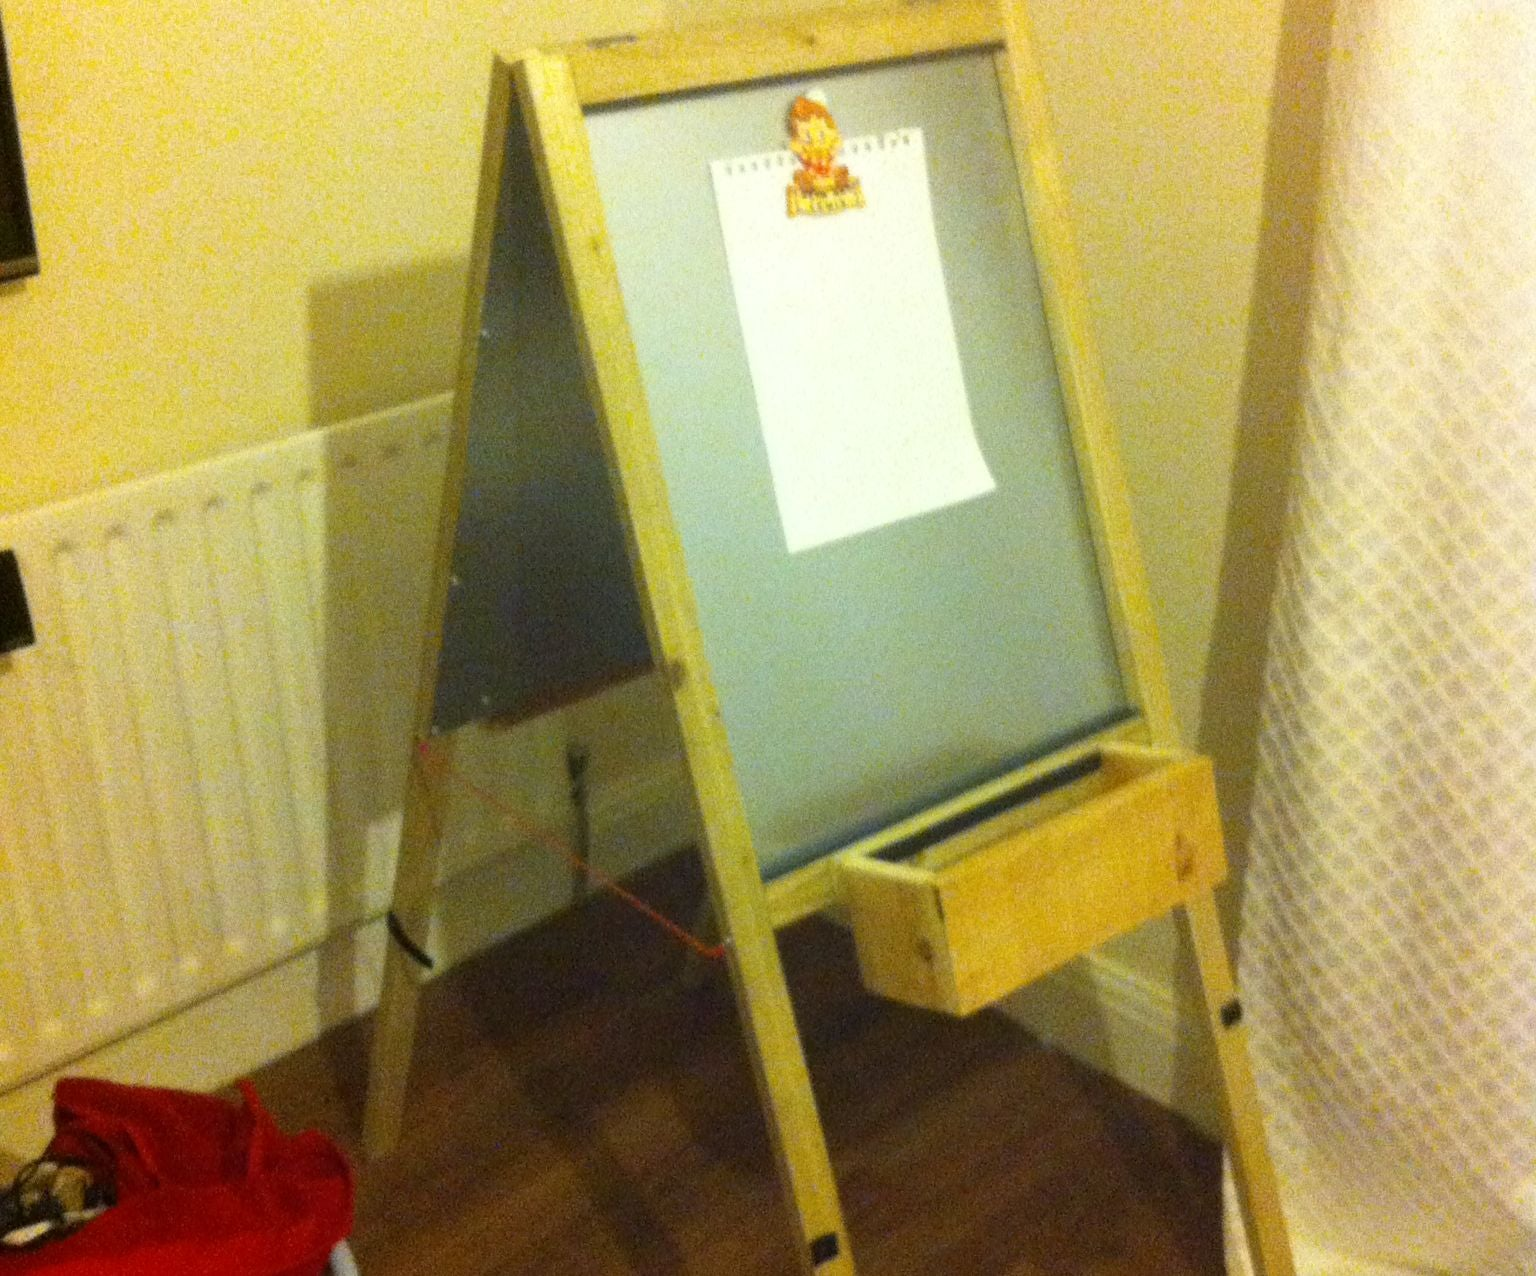 Magnetic Easel for Children: 6 Steps (with Pictures)